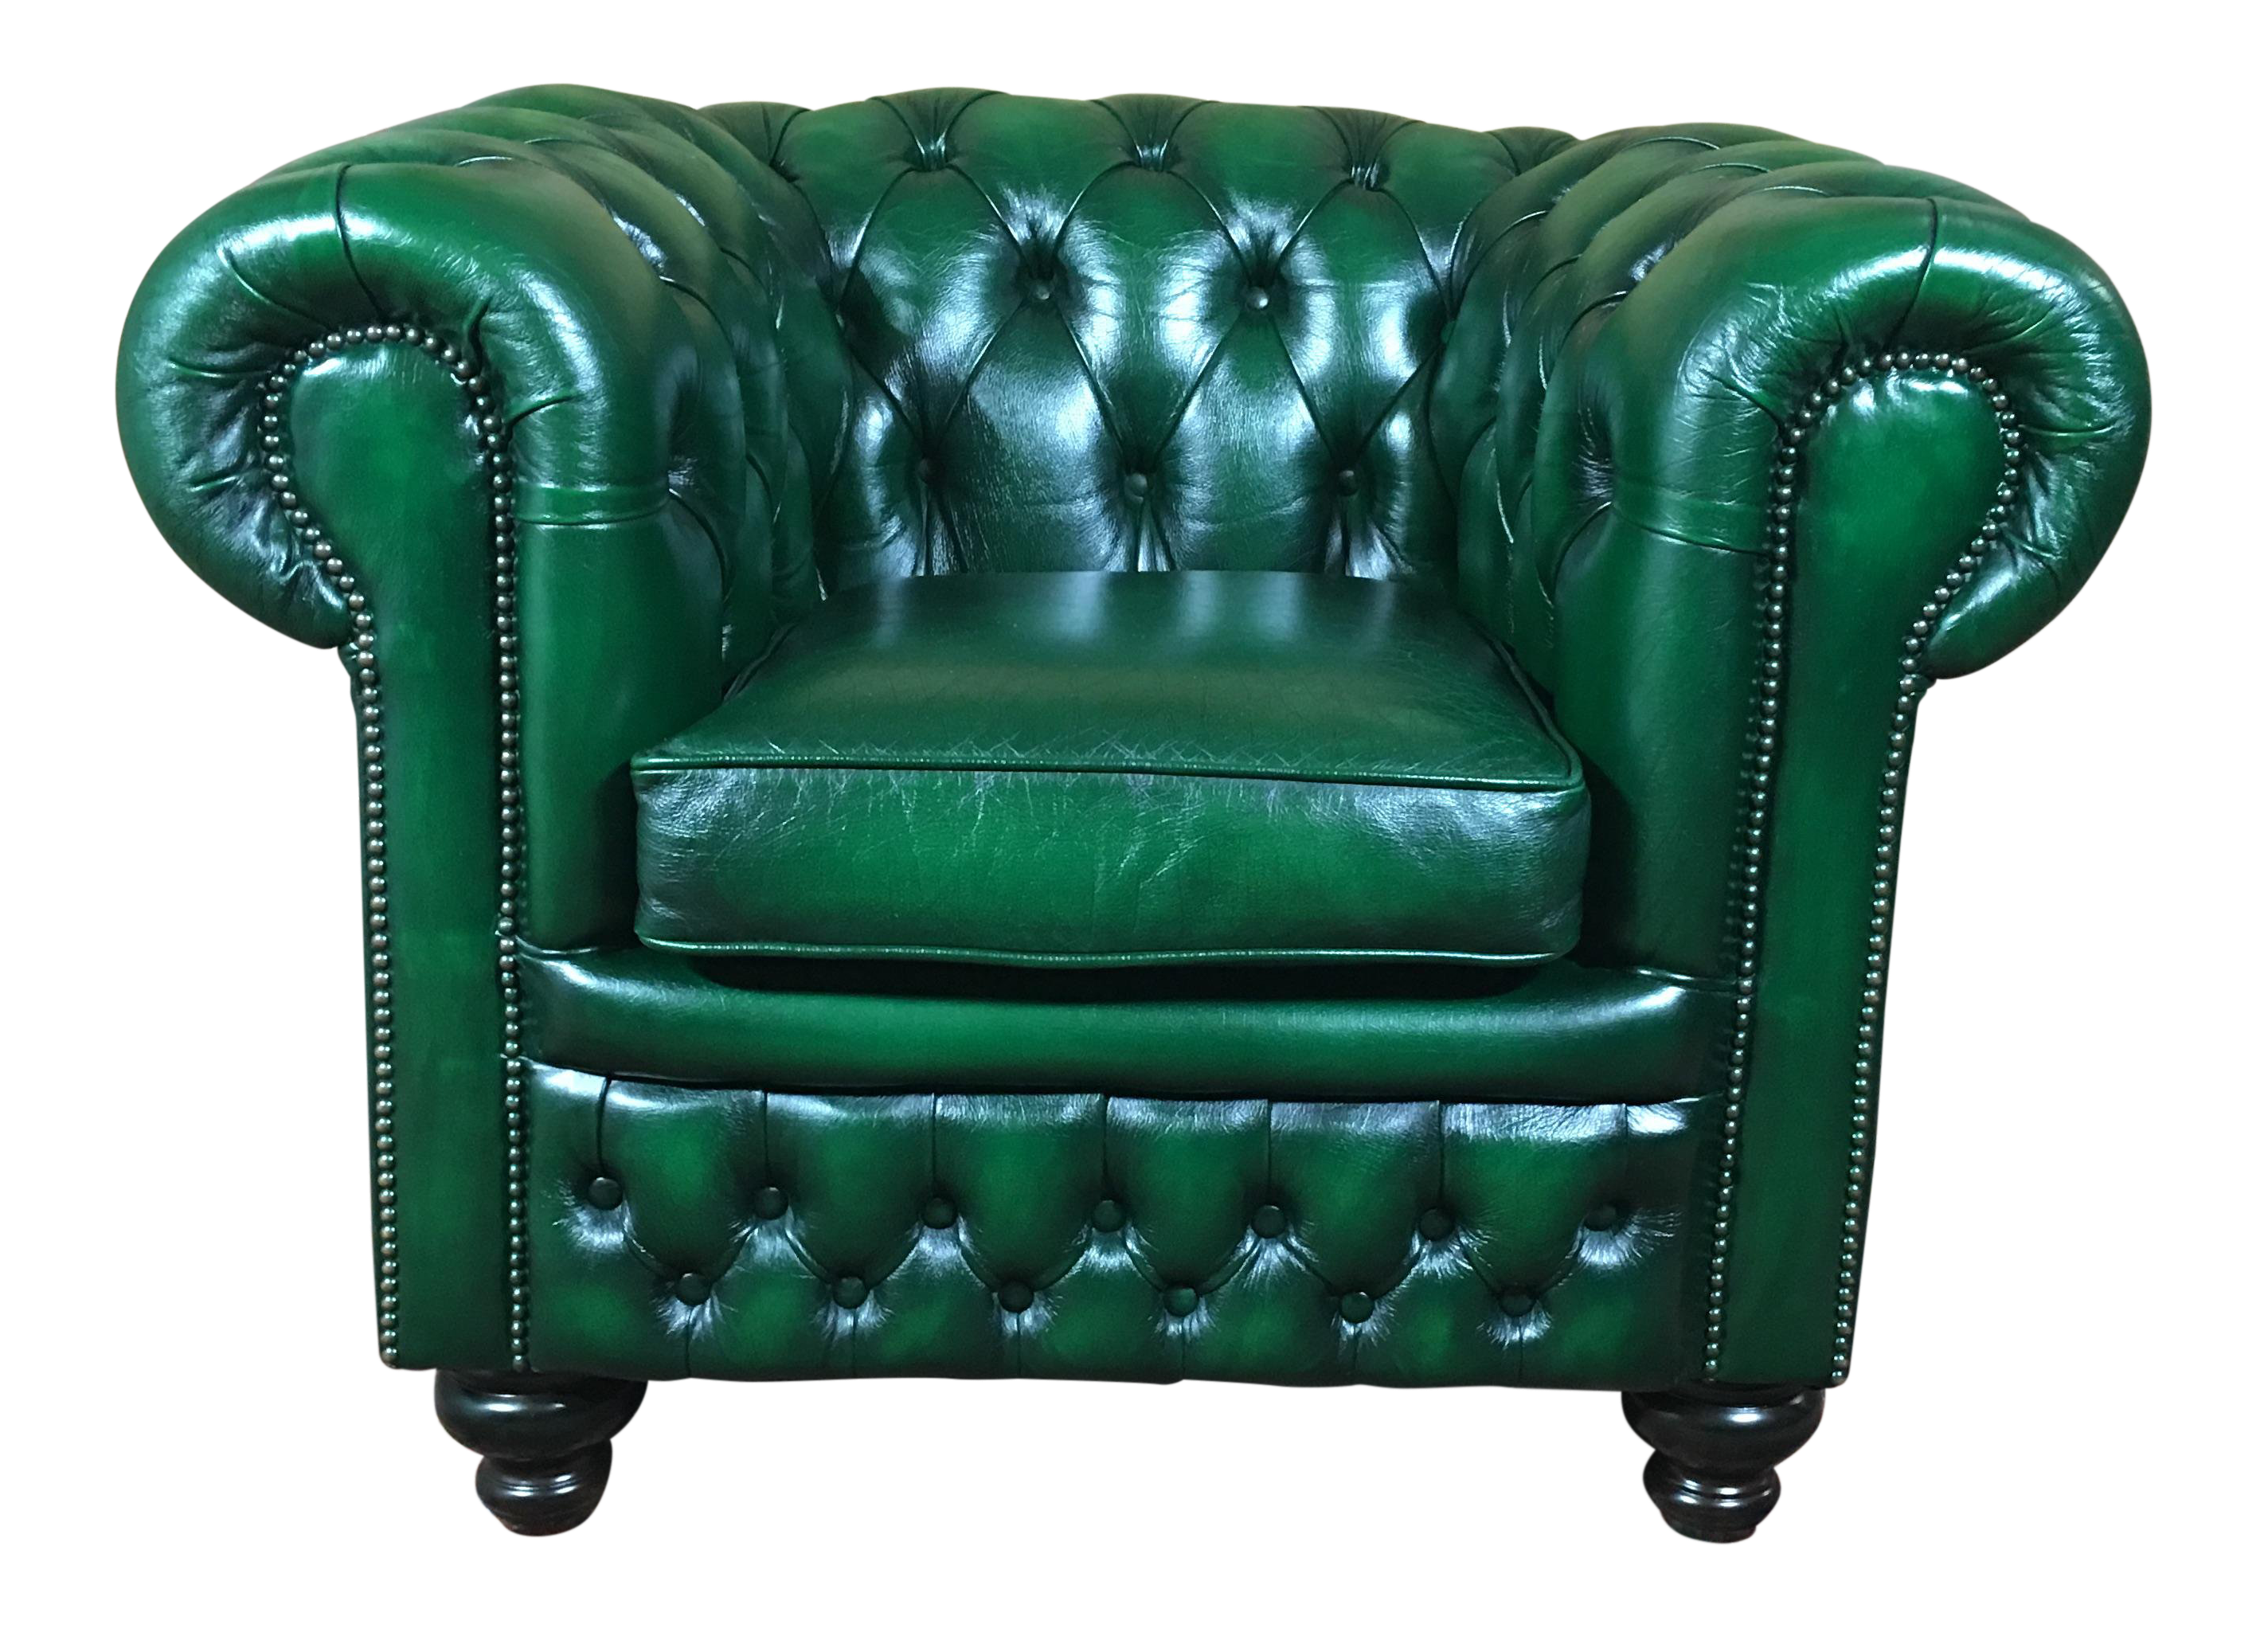 Green Leather Sofa Chesterfield - Beautiful House Design